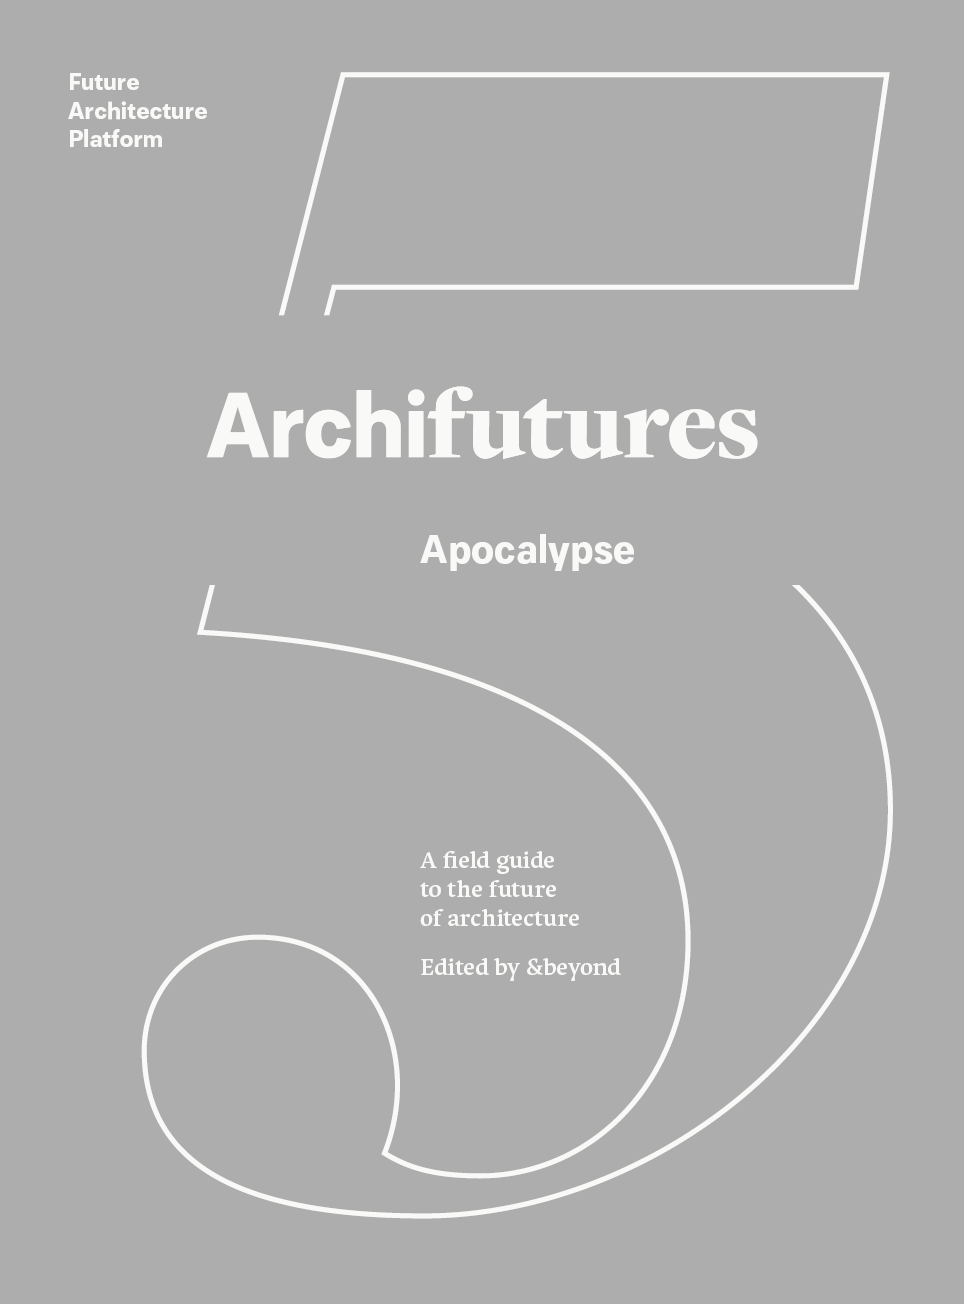 &beyond collective A field guide to surviving the future of architecture